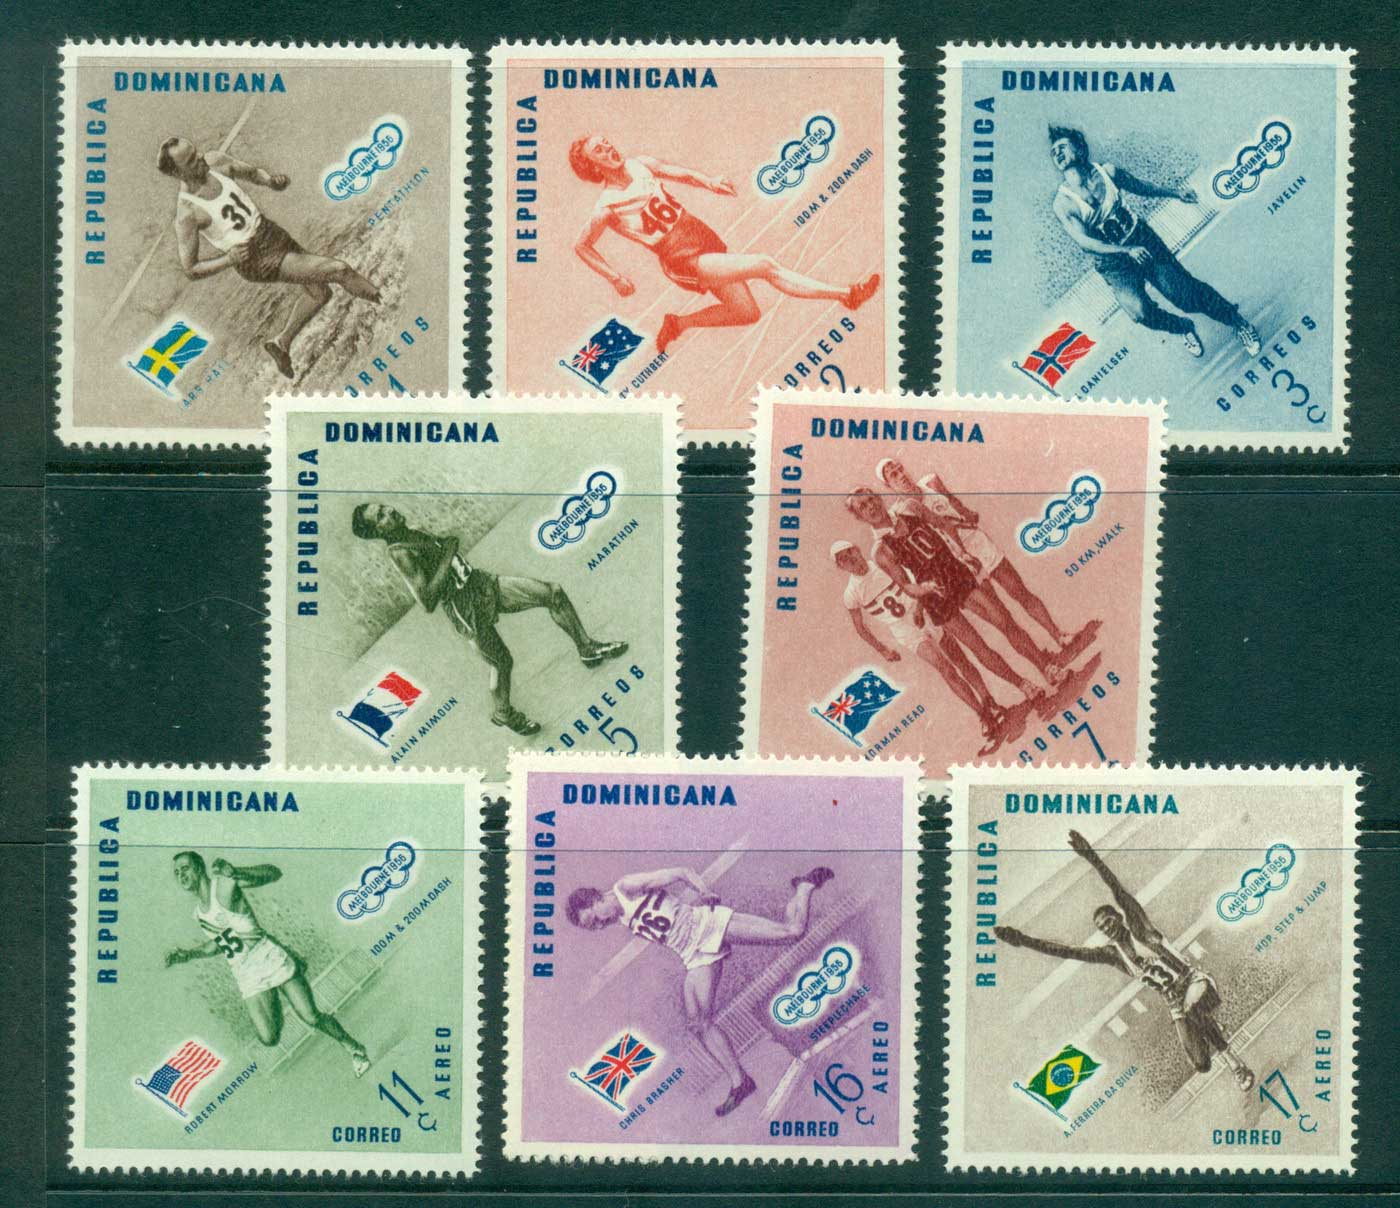 Dominican Republic 1957 Olympic Winners MUH lot35444